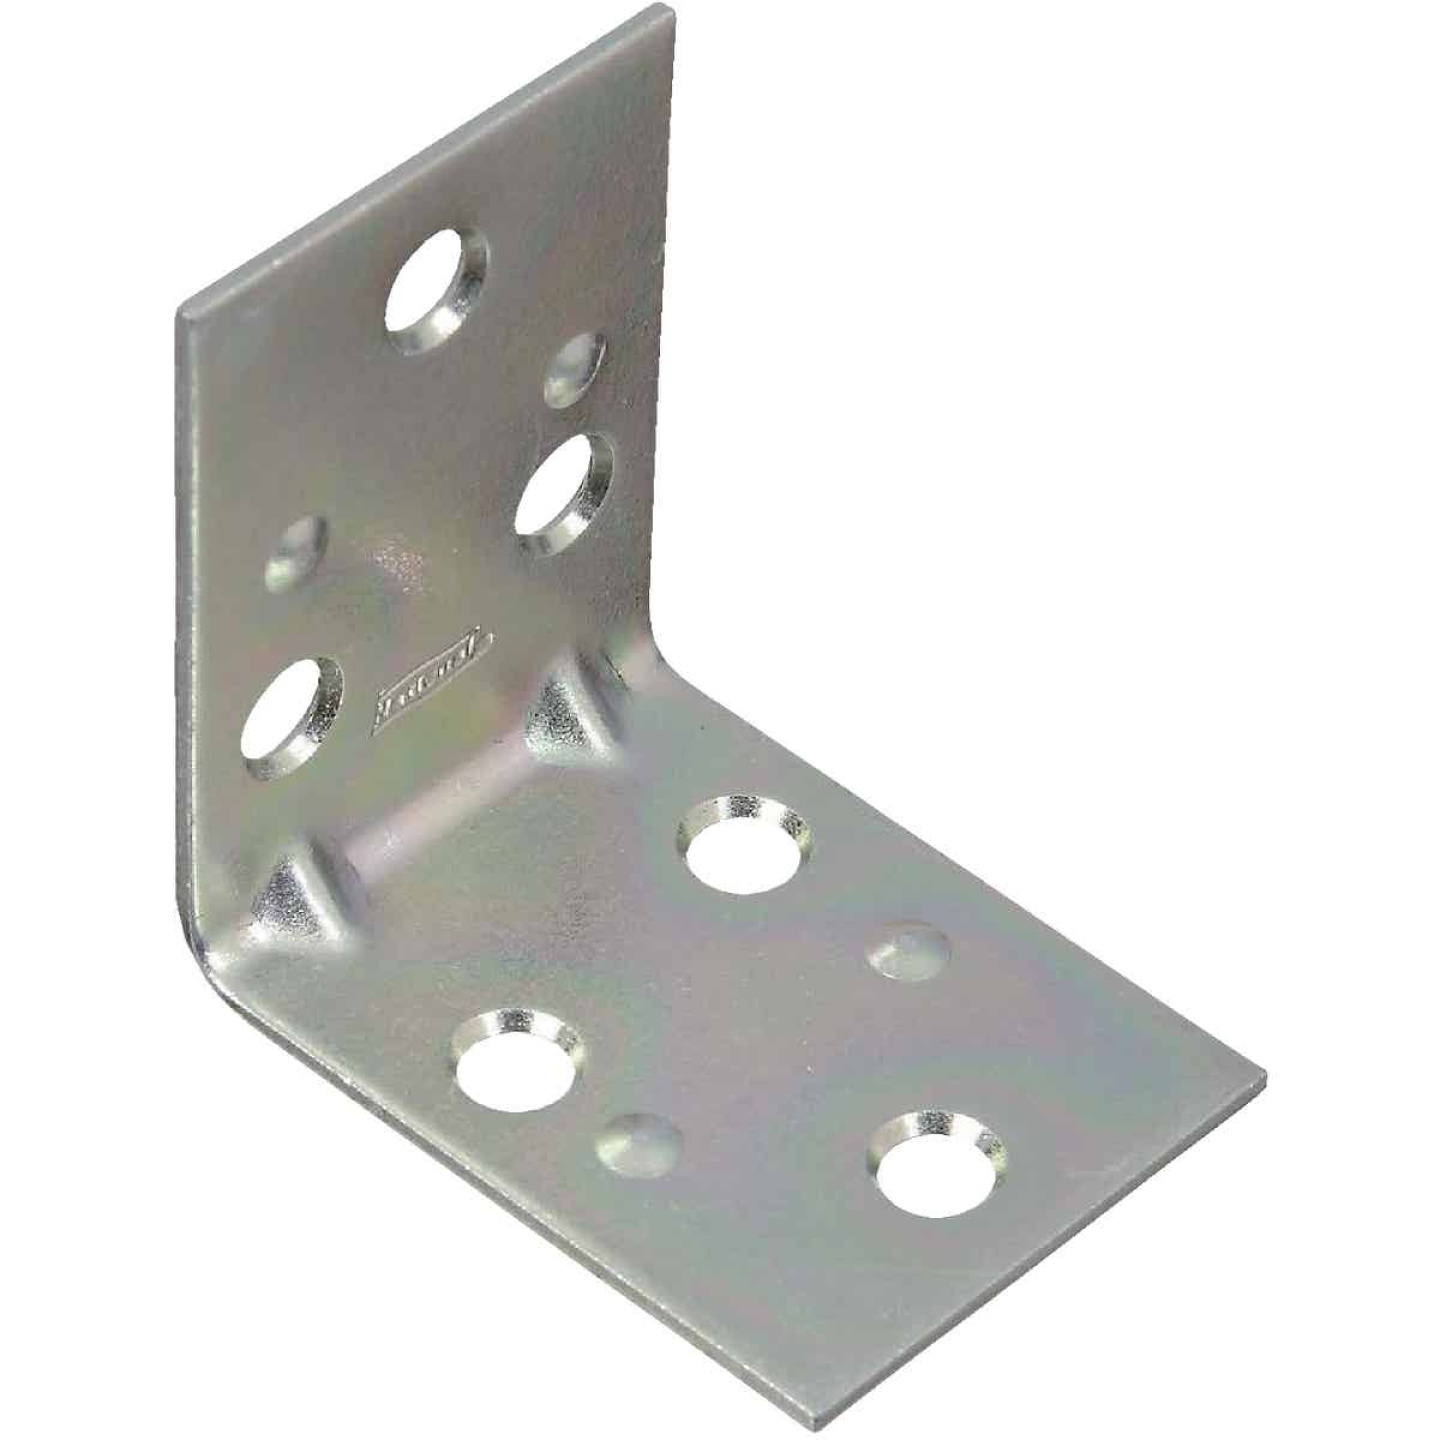 National Catalog V121 2 In. x 1-1/2 In. Double Wide Zinc Corner Brace Image 1